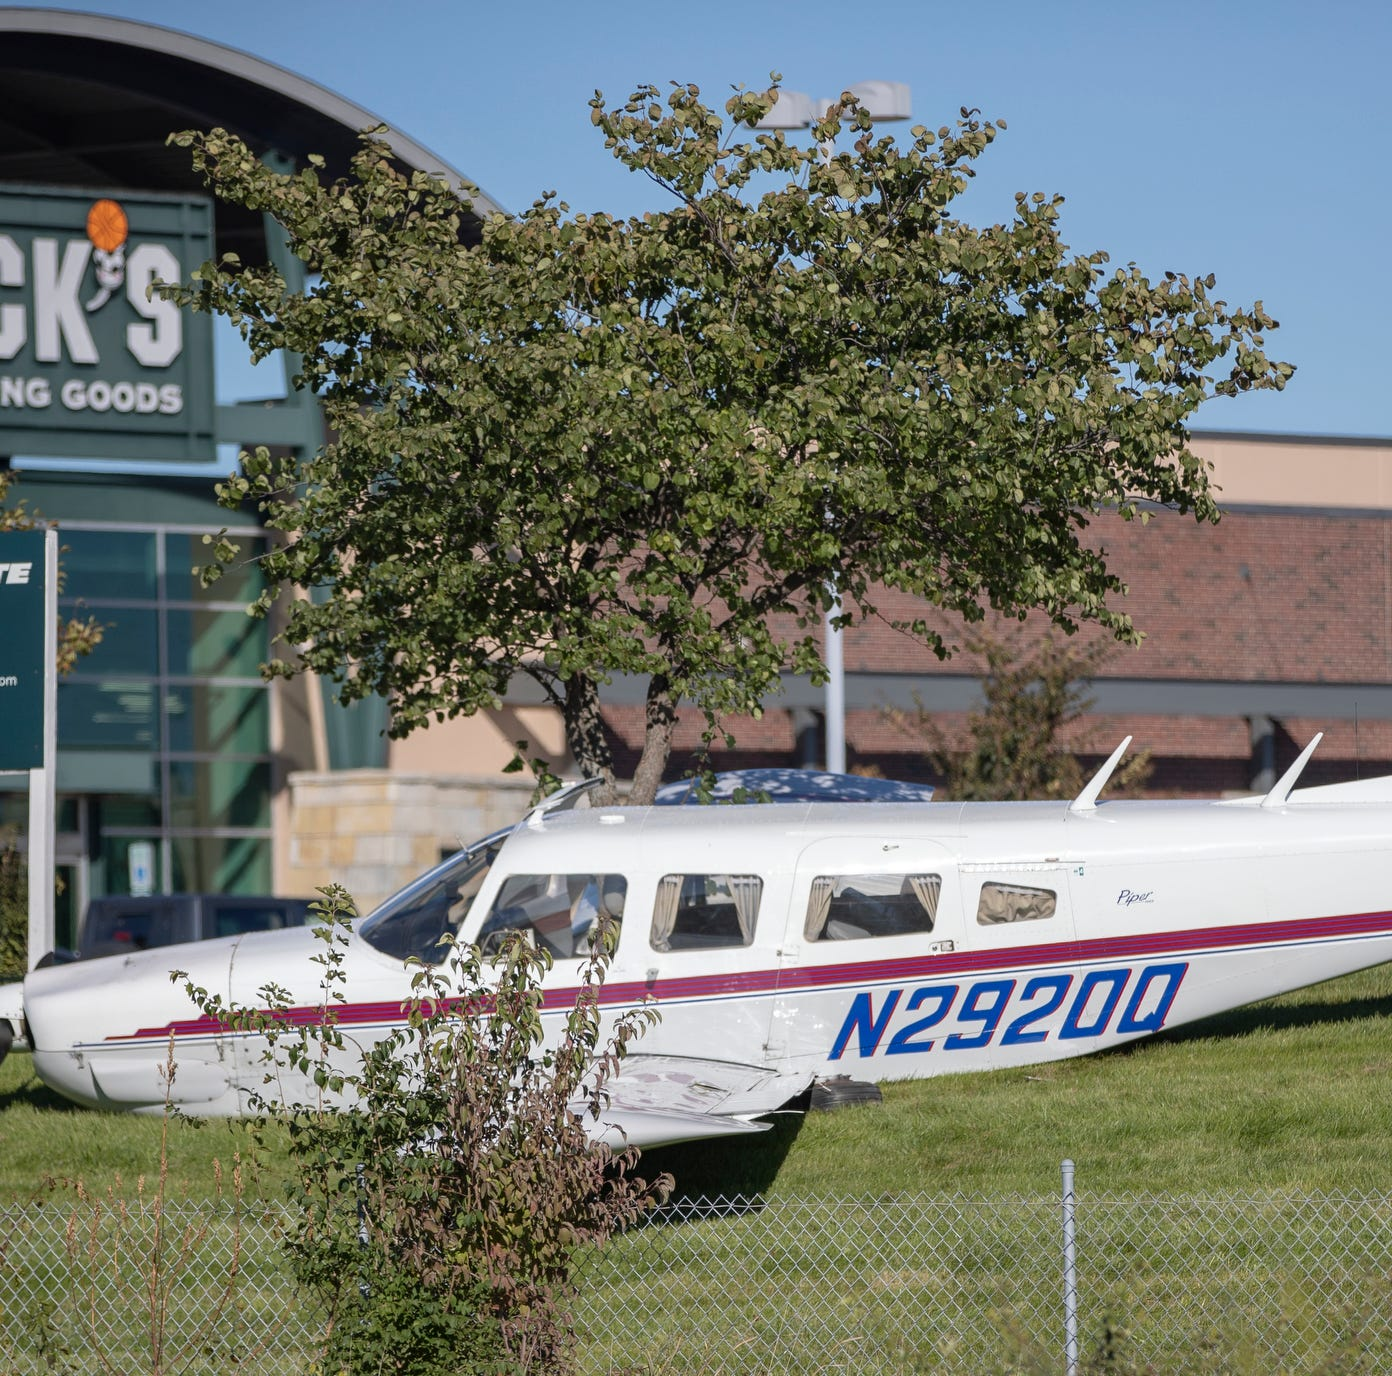 'Let's get this stopped safely': Plane crashes in shopping center parking lot